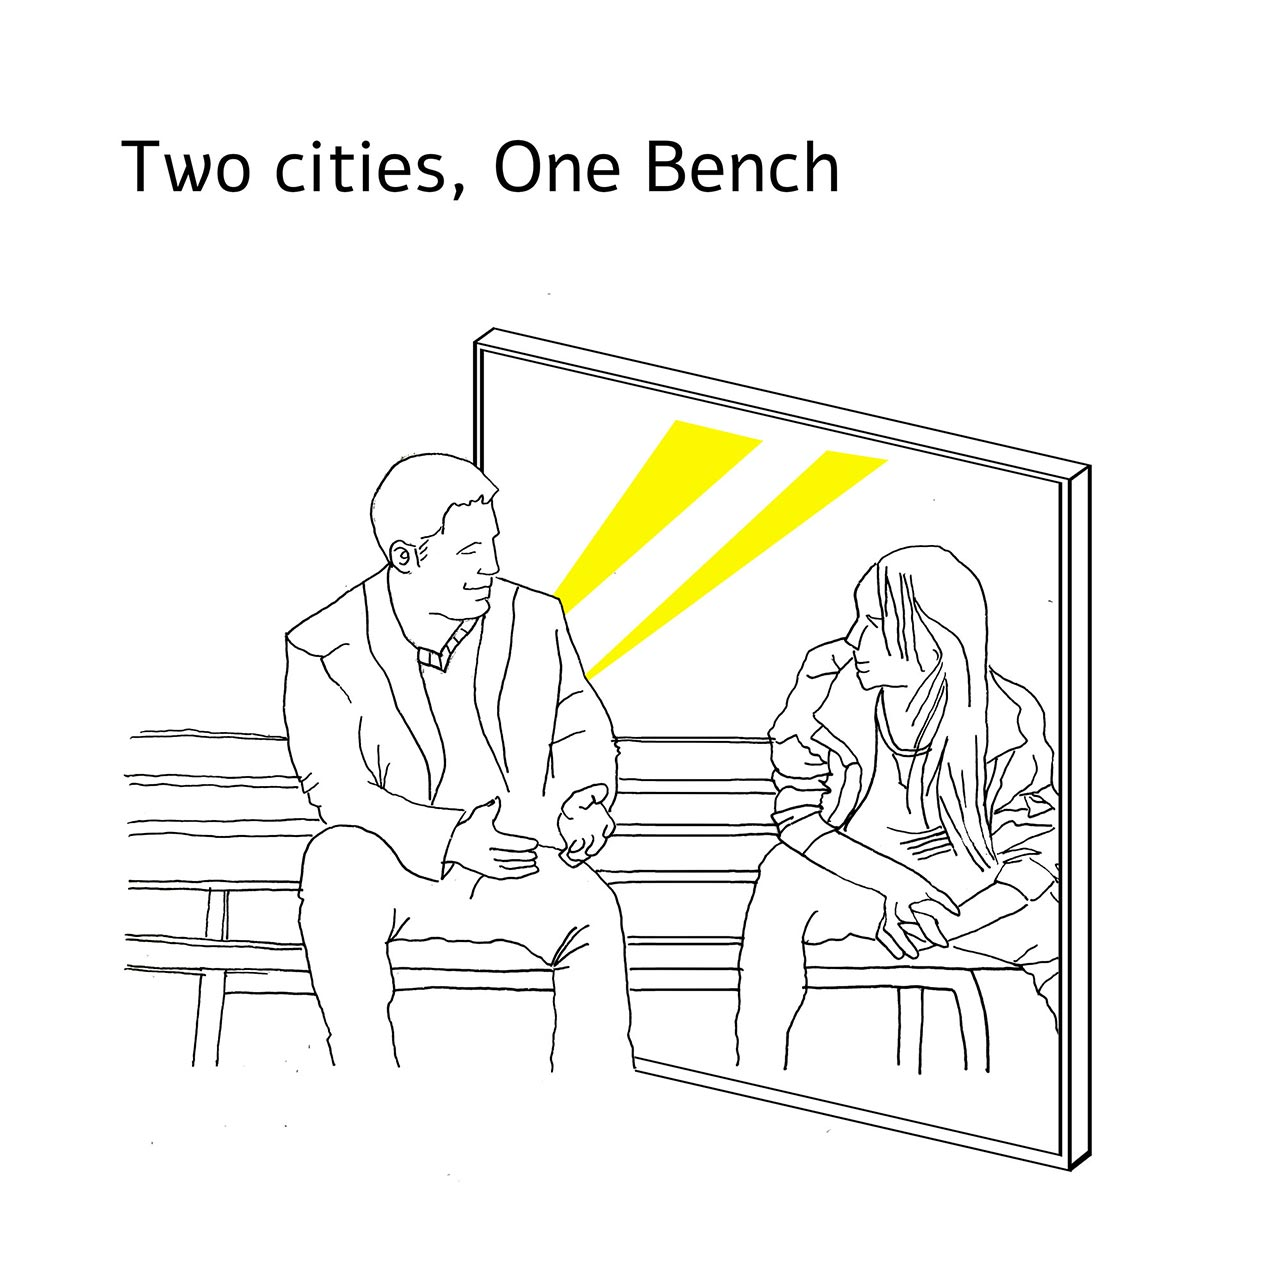 Two cities, One bench